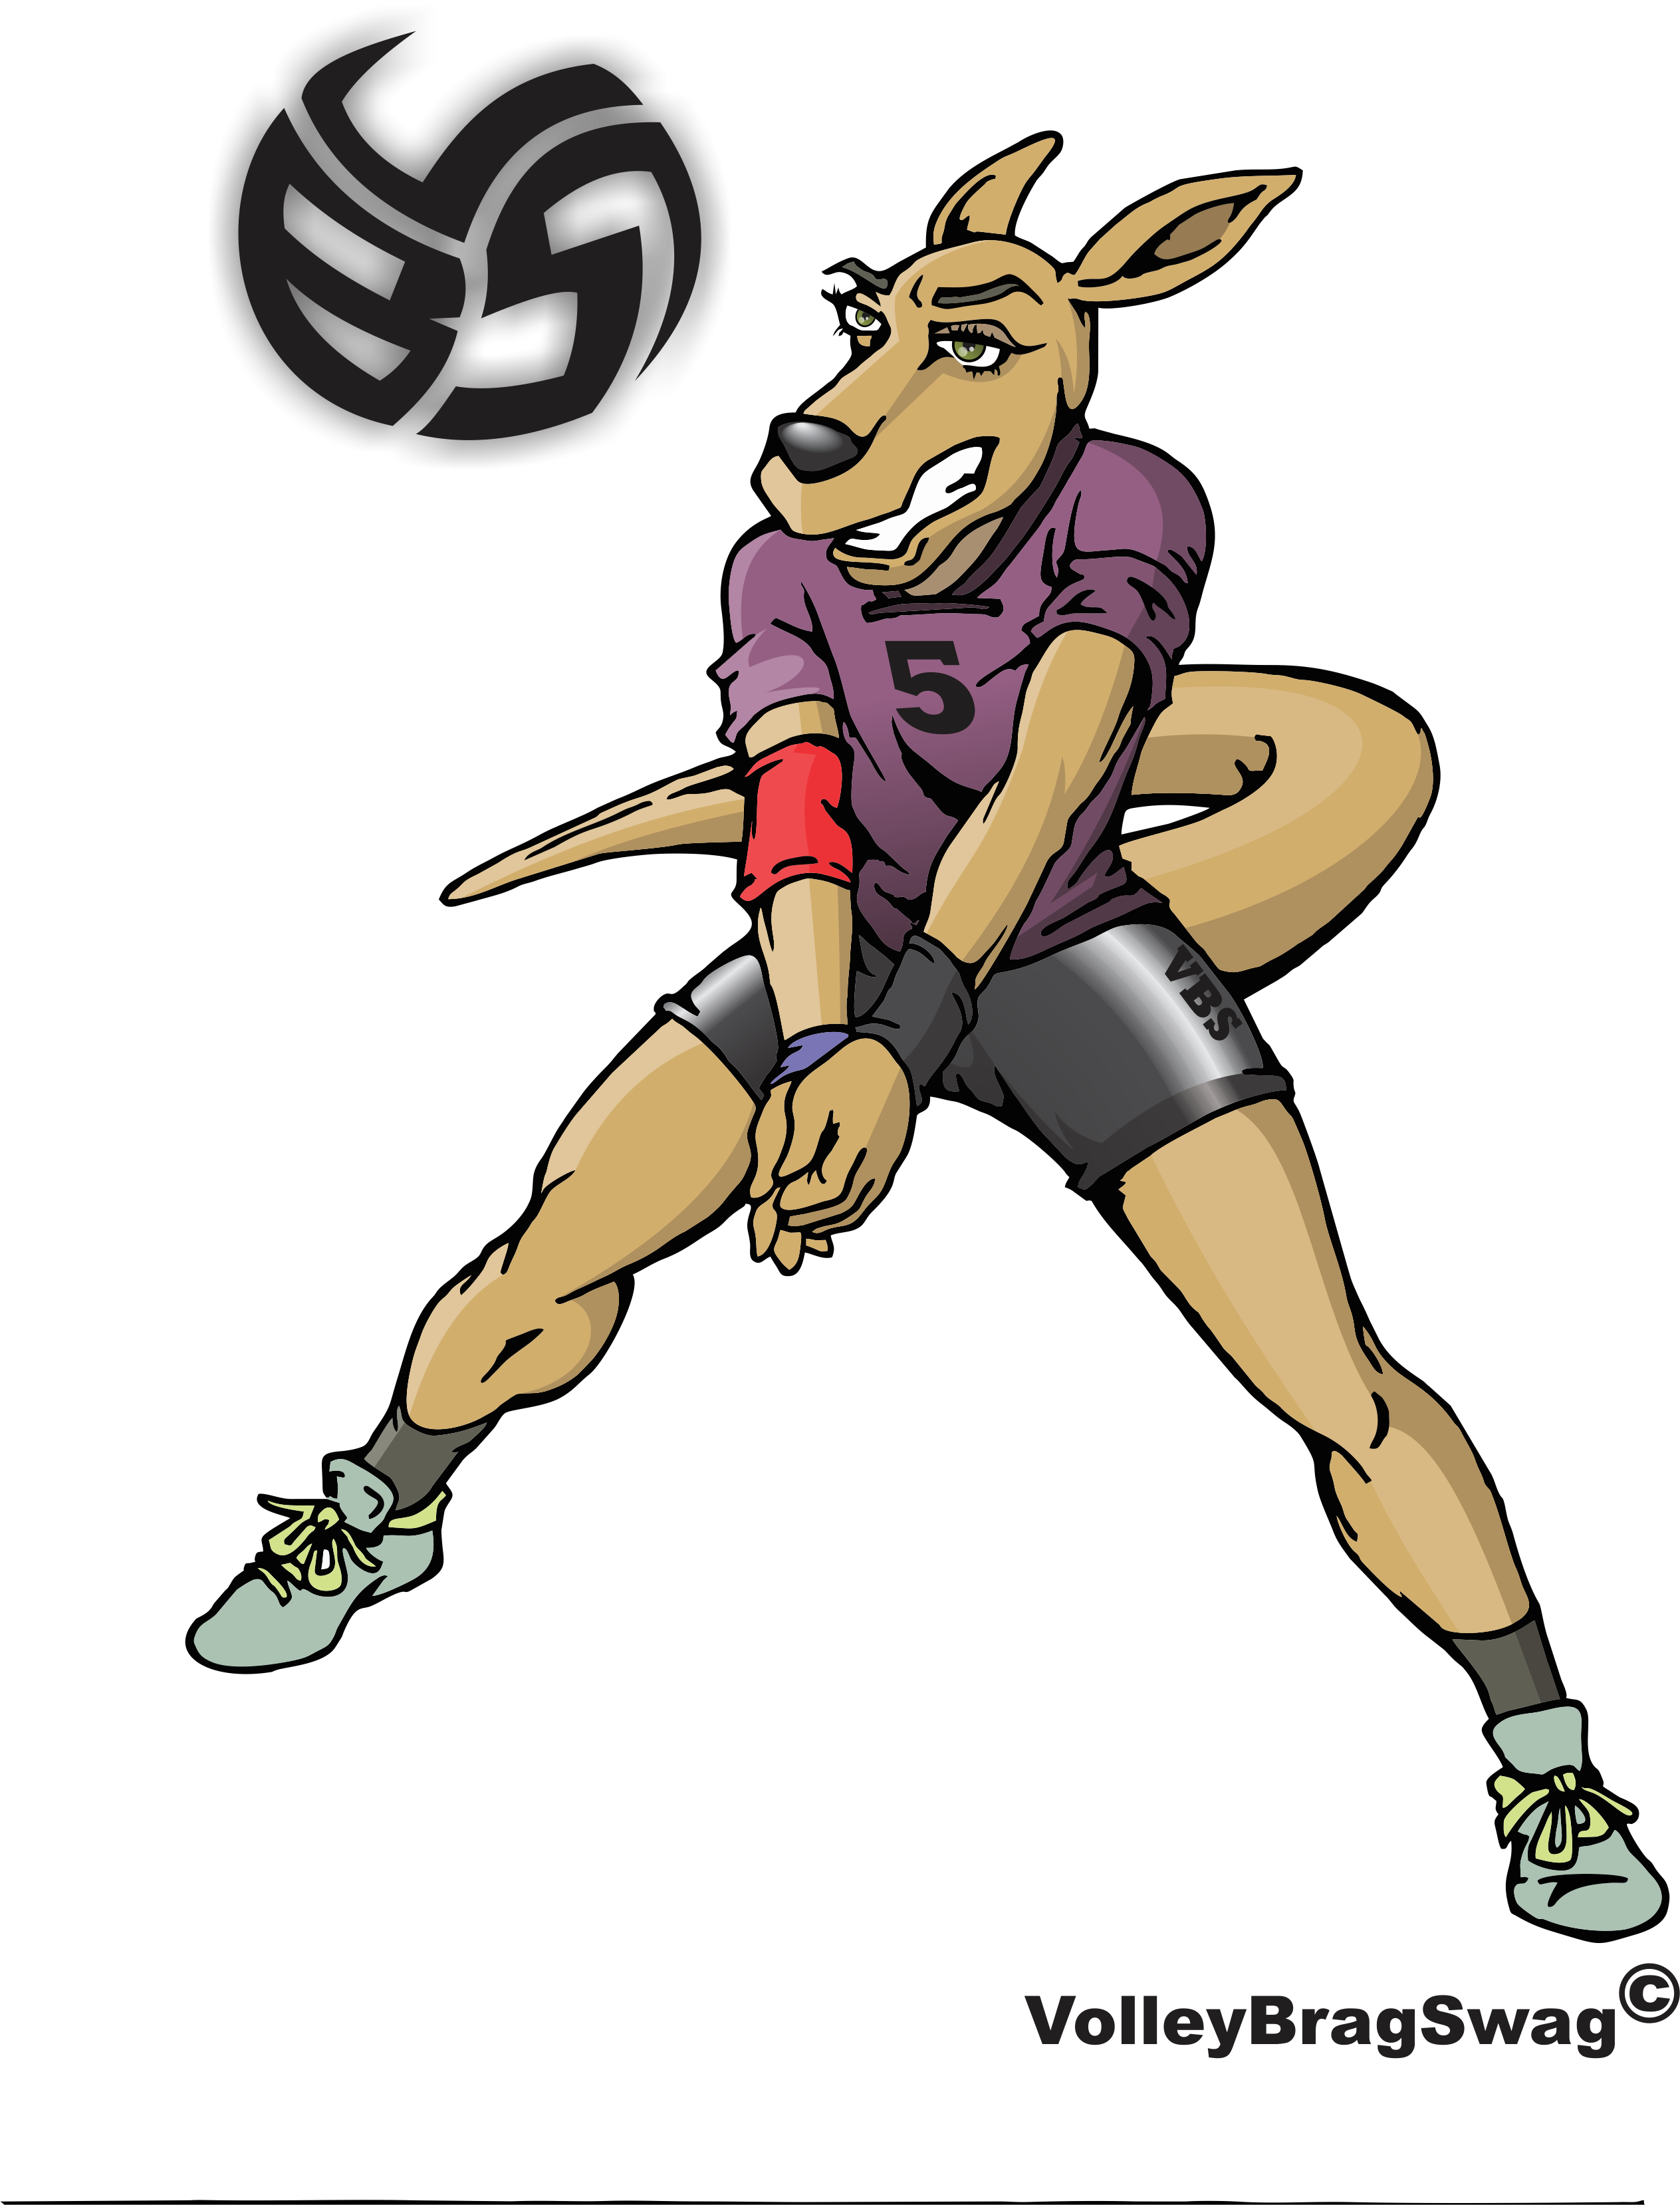 Rese The Kangaroo Demonstrates Her Indoor Volleyball Forearm Pass Technique Volleyball T Shirt Designs Volleyball Designs Volleyball